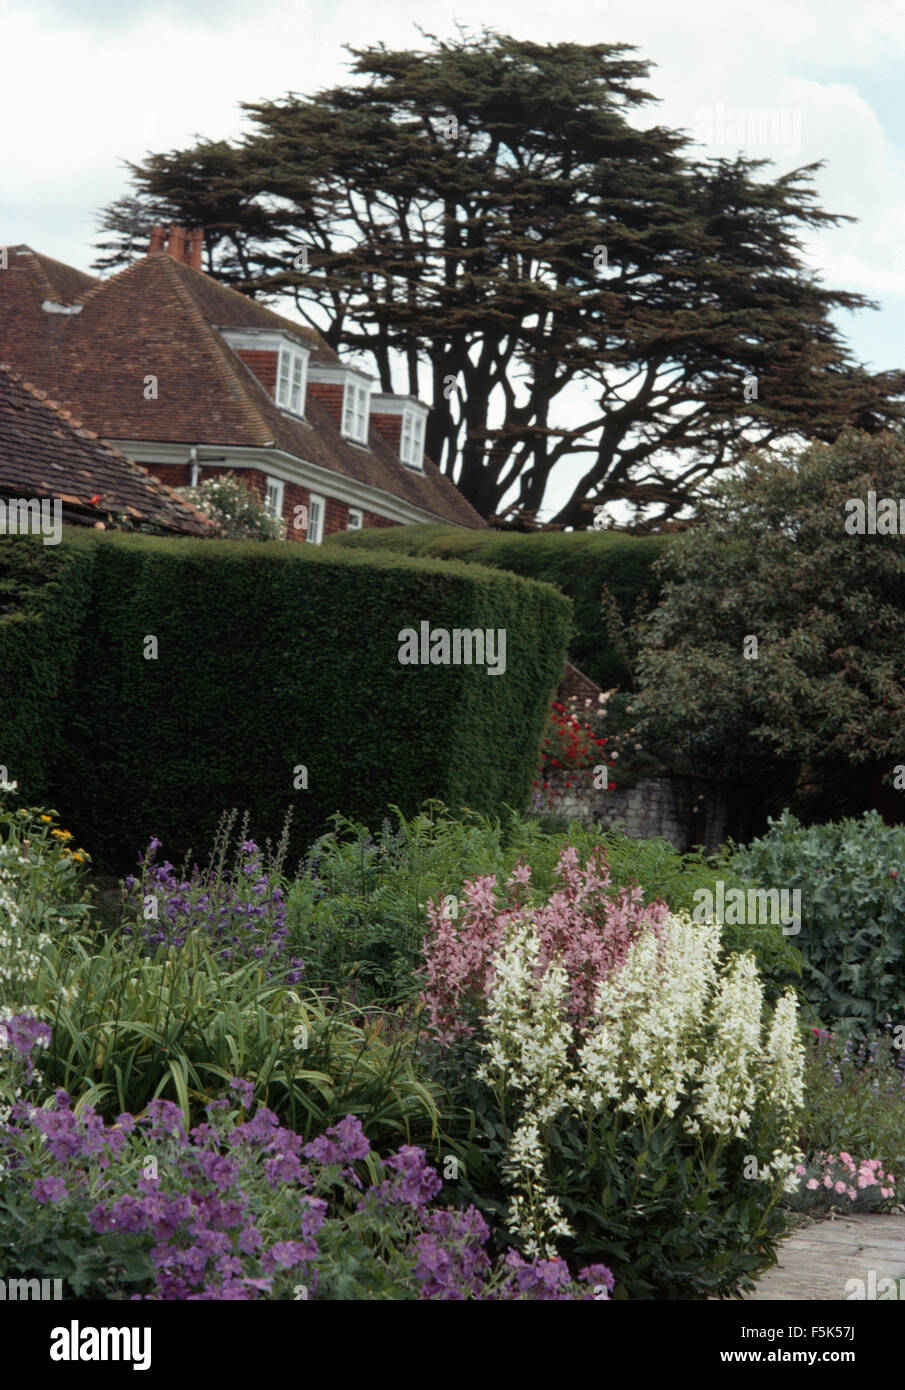 Blue geraniums and white perennials in border in garden with a clipped hedge and a cedar tree - Stock Image